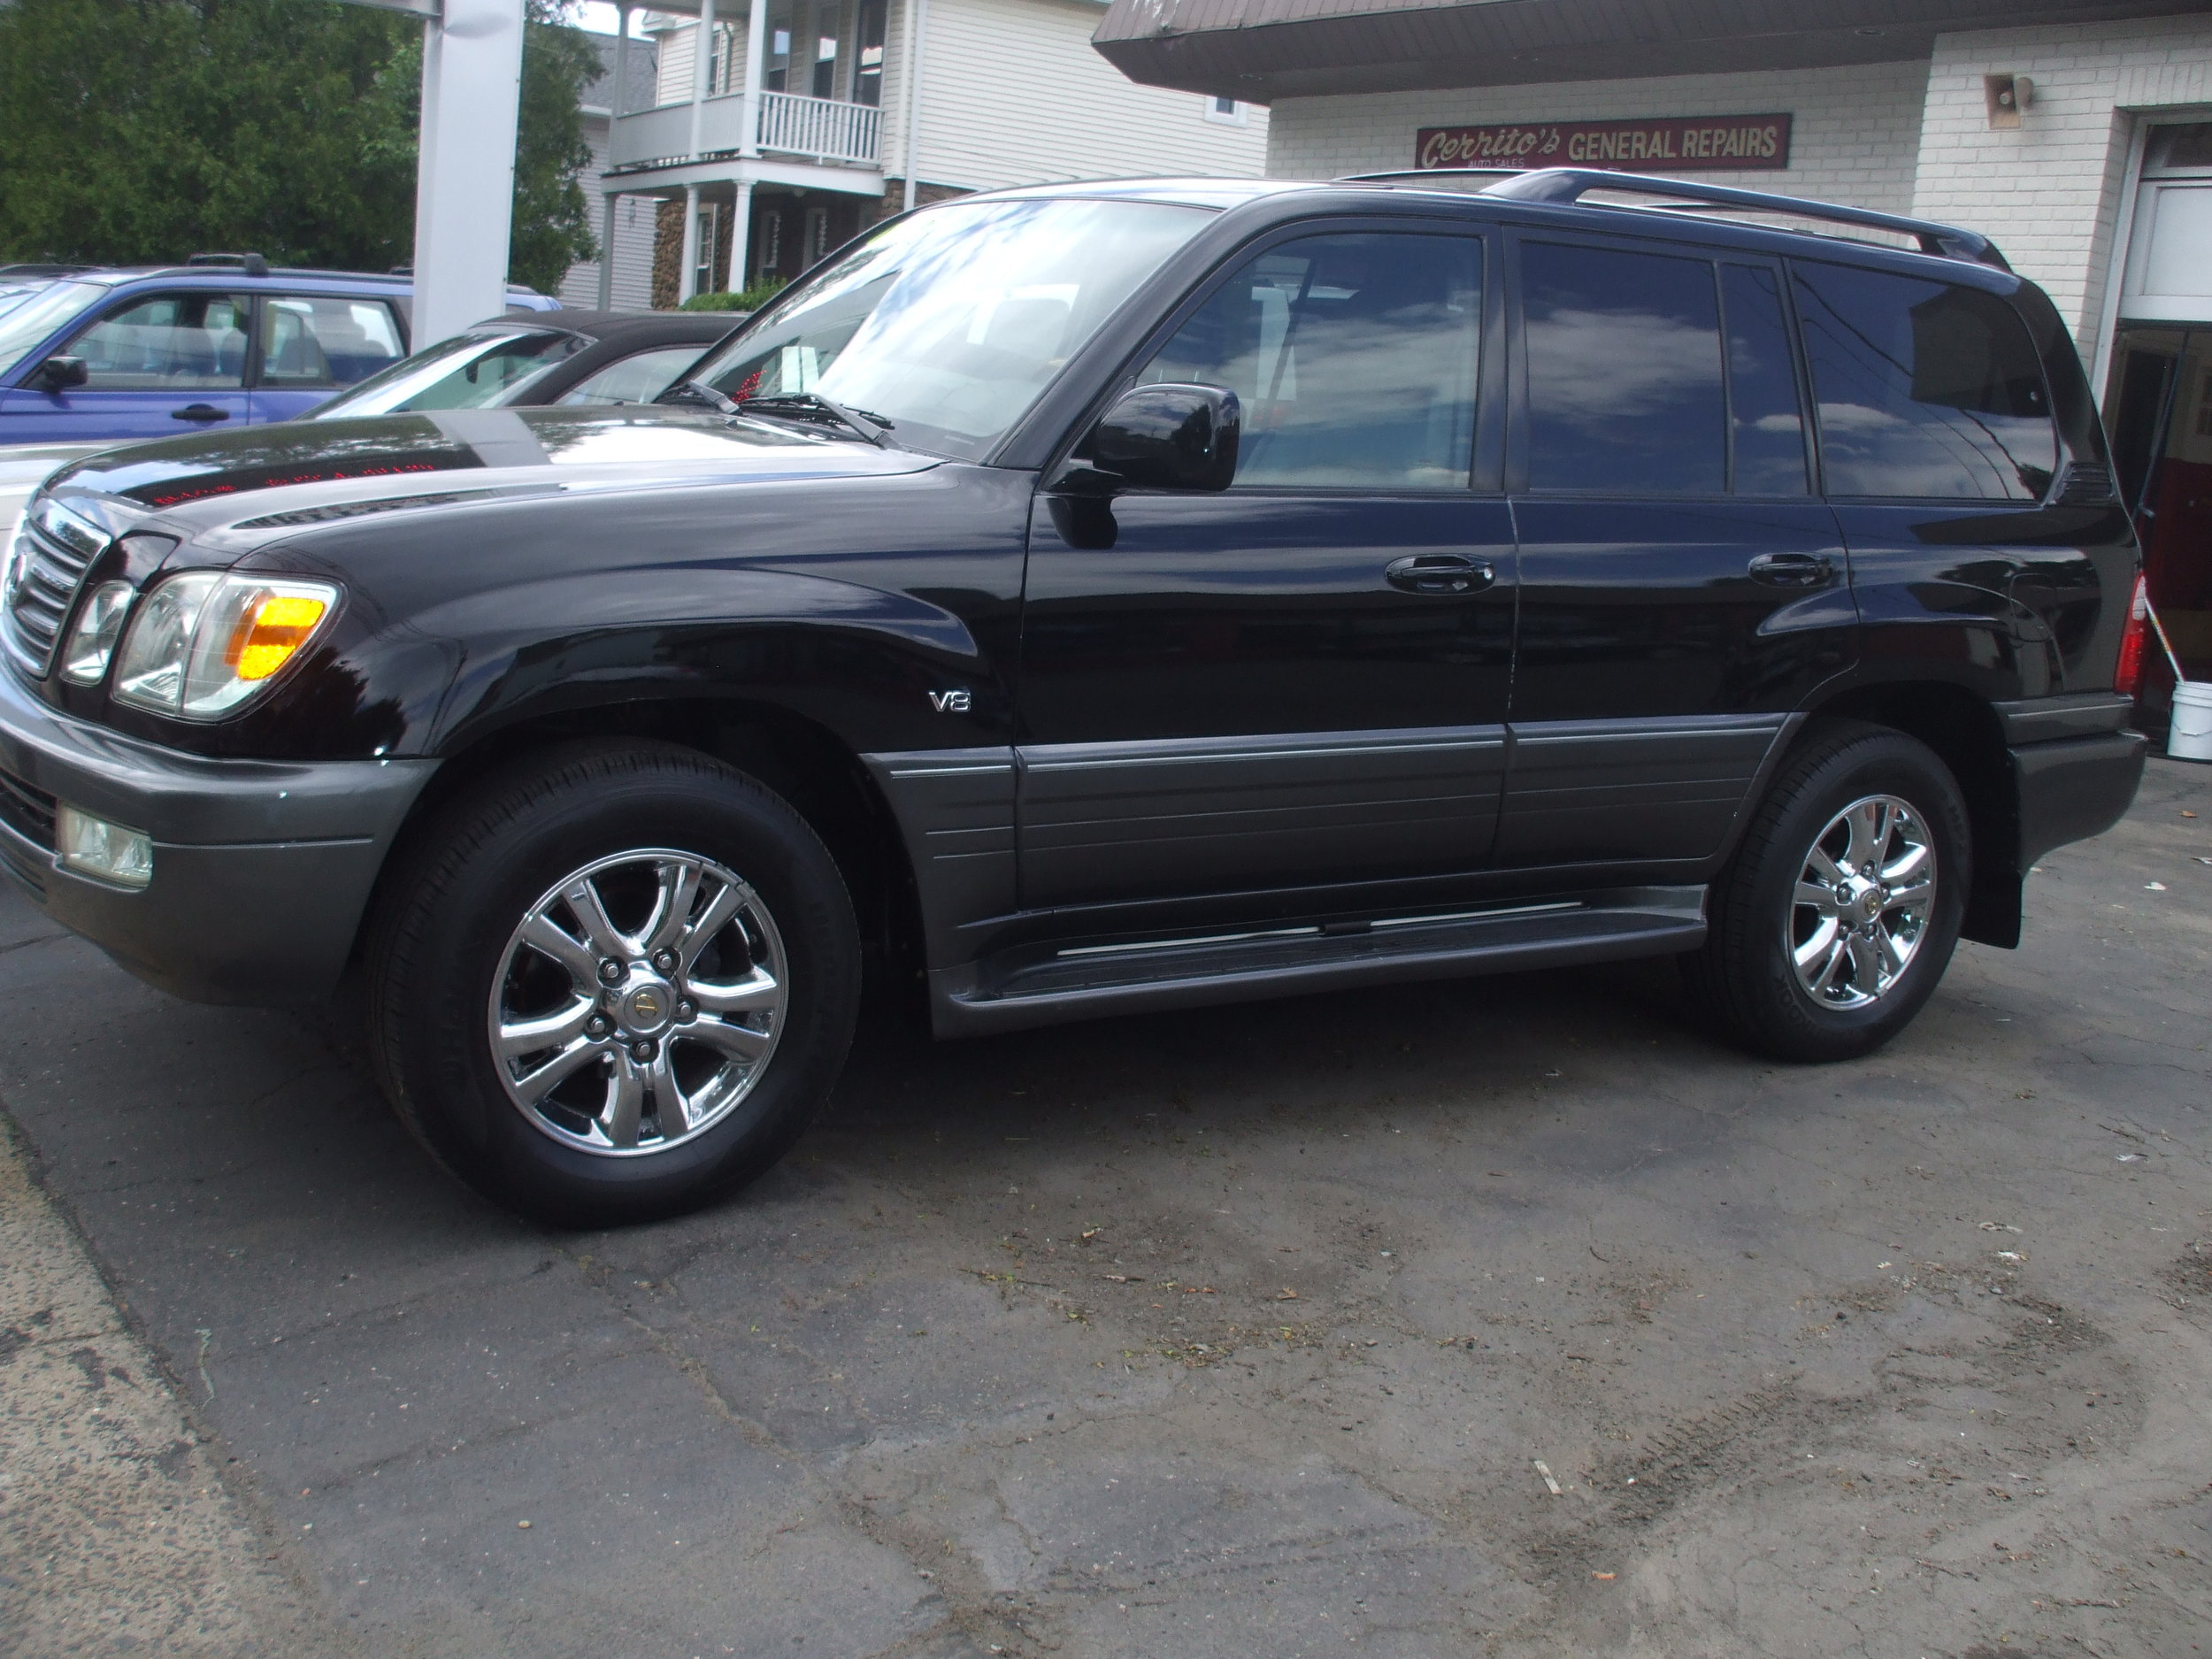 2004 Lexus LX470  $12,900 Loaded Great condition AWD leather roof 136k stock #17152 Call or stop by Cerritos Auto Sales 280 N. Colony st. Wallingford CT 06492 203-265-6142